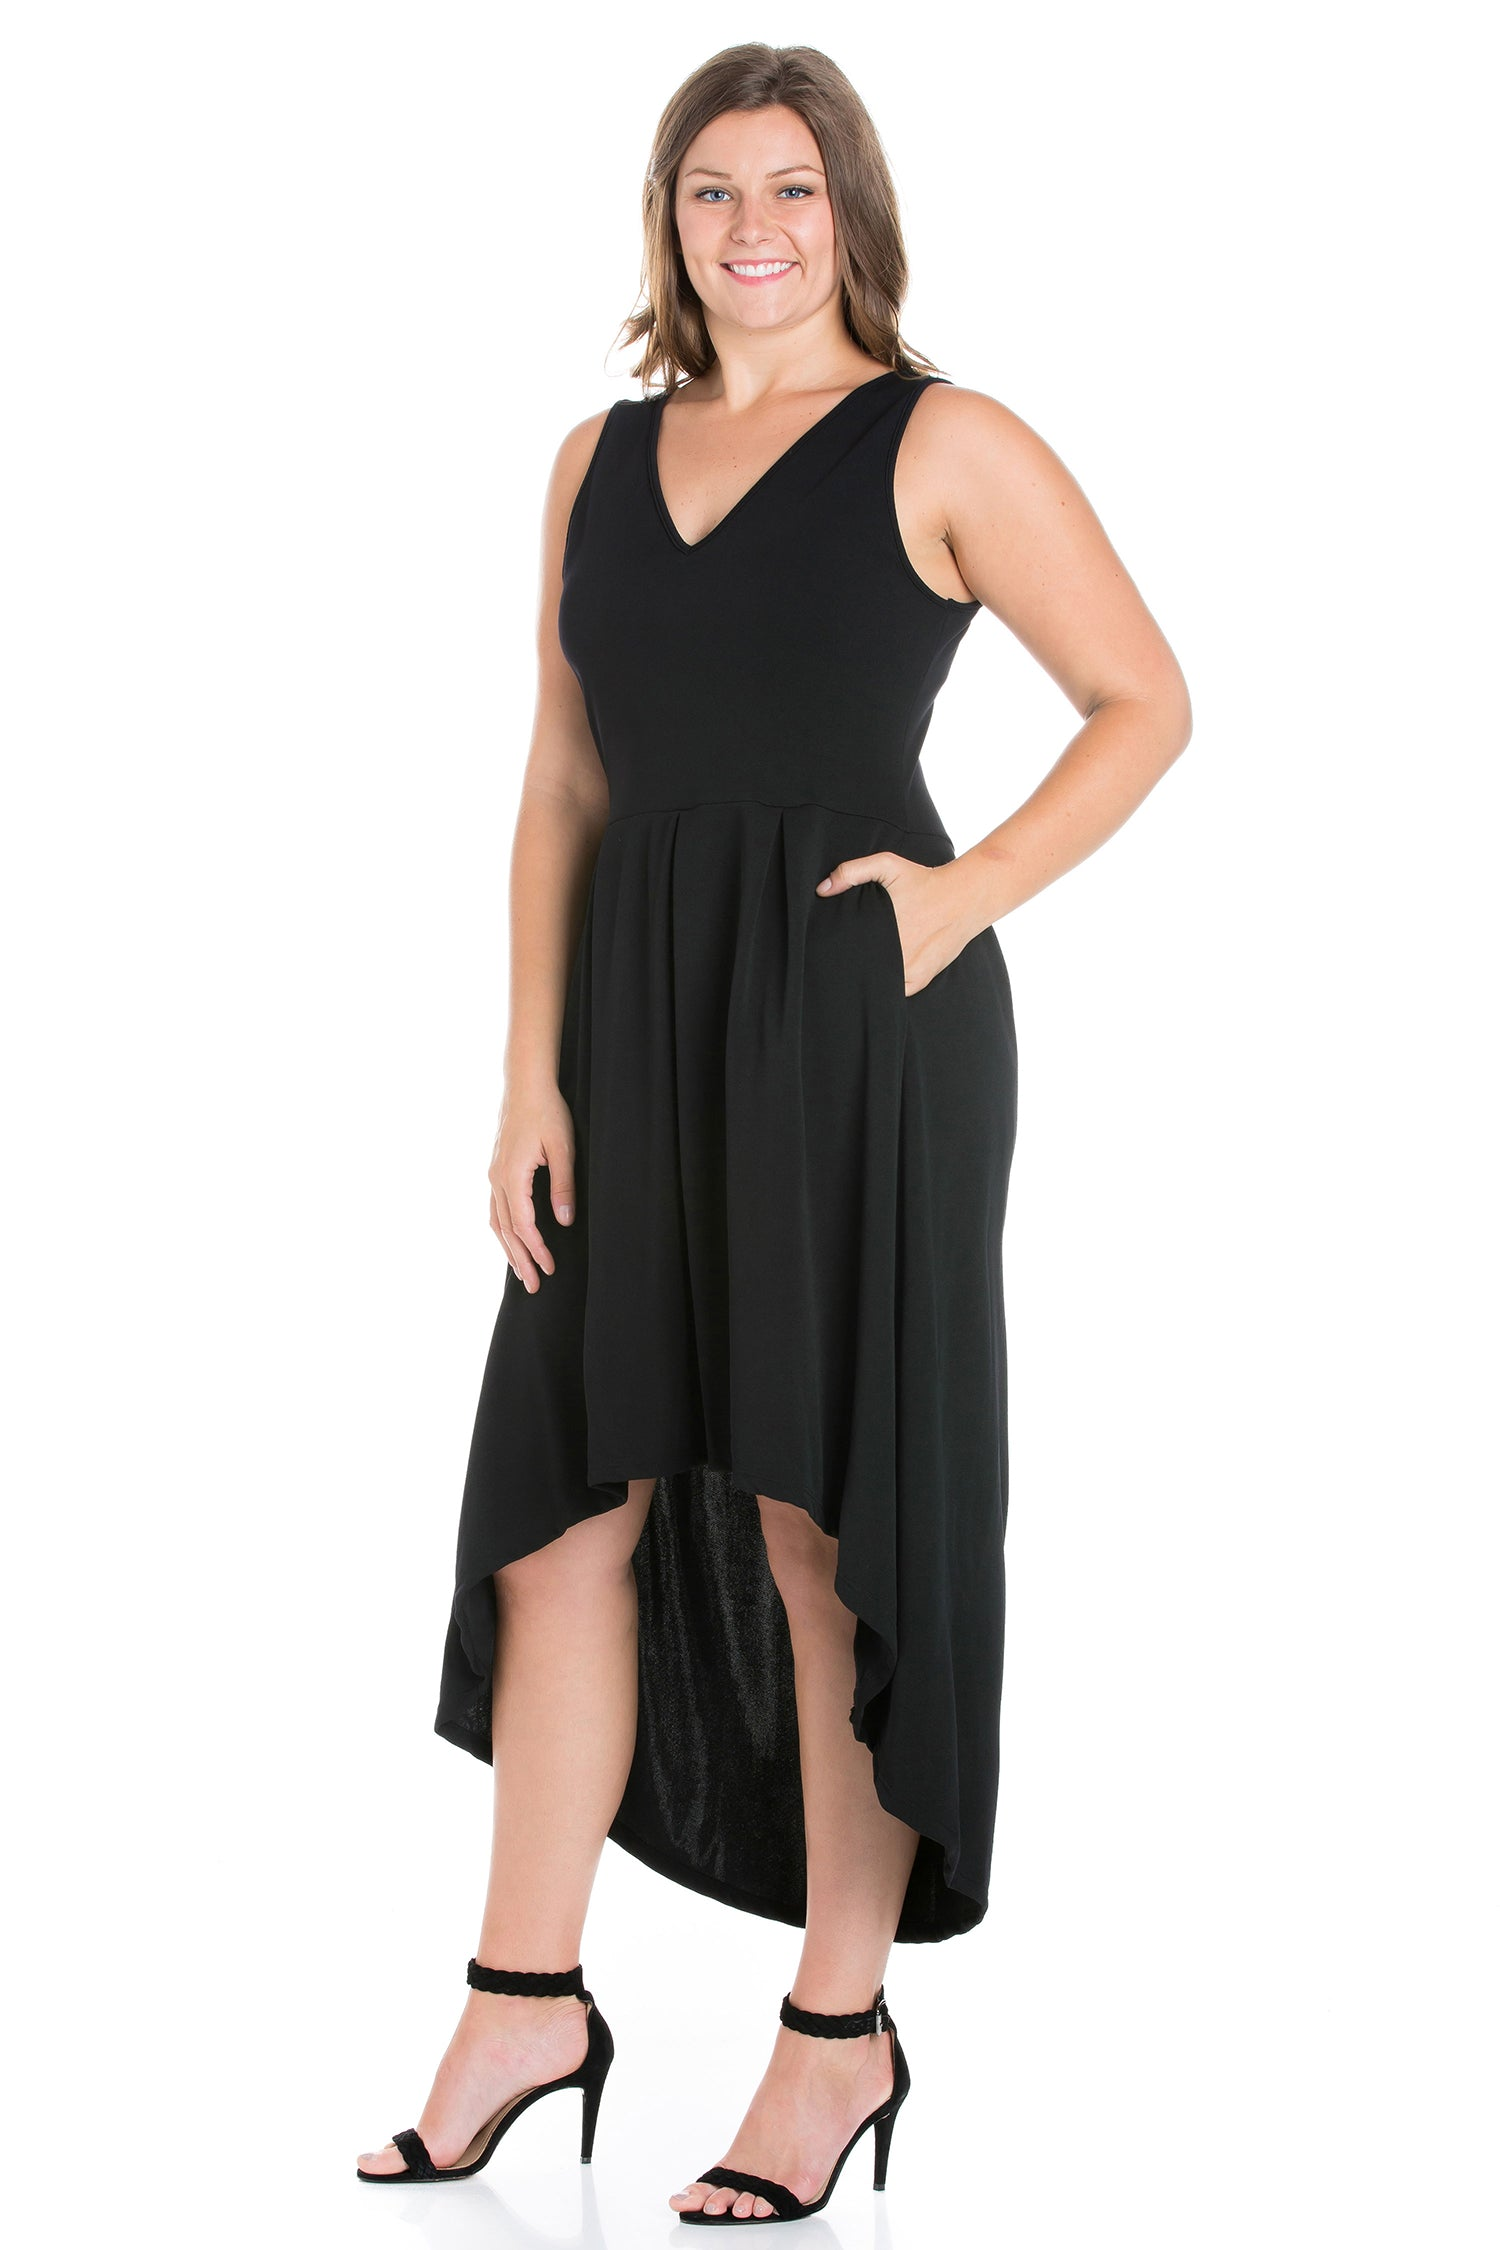 24seven Comfort Apparel High Low Plus Size Party Dress with Pockets-DRESSES-24Seven Comfort Apparel-BLACK-1X-24/7 Comfort Apparel